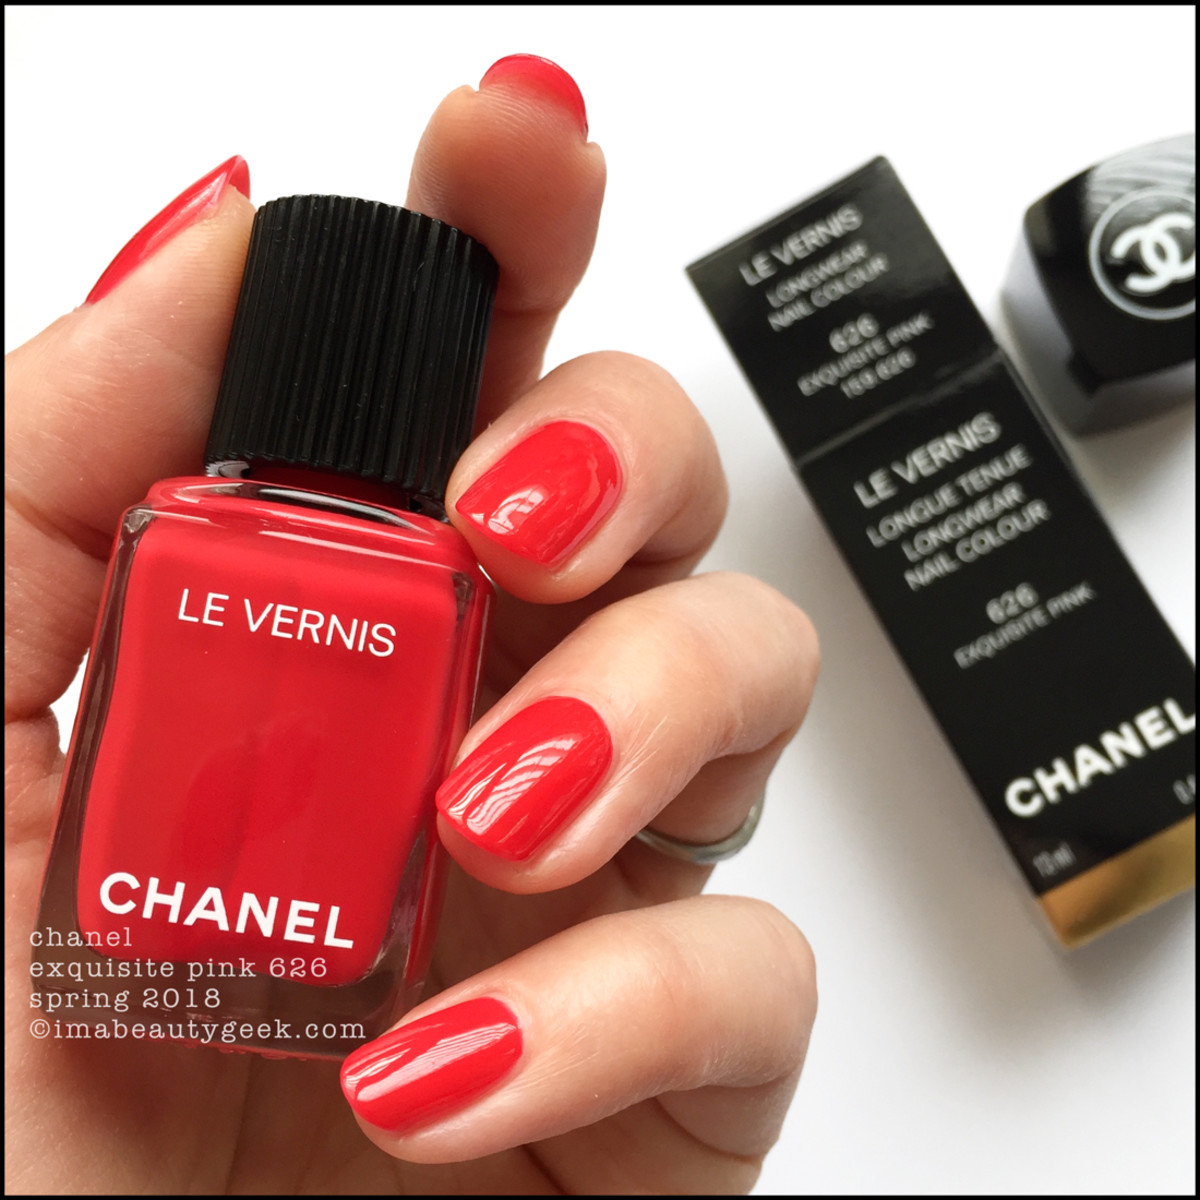 CHANEL LE VERNIS SPRING 2018 SWATCHES + LIMITED EDITIONS - Beautygeeks